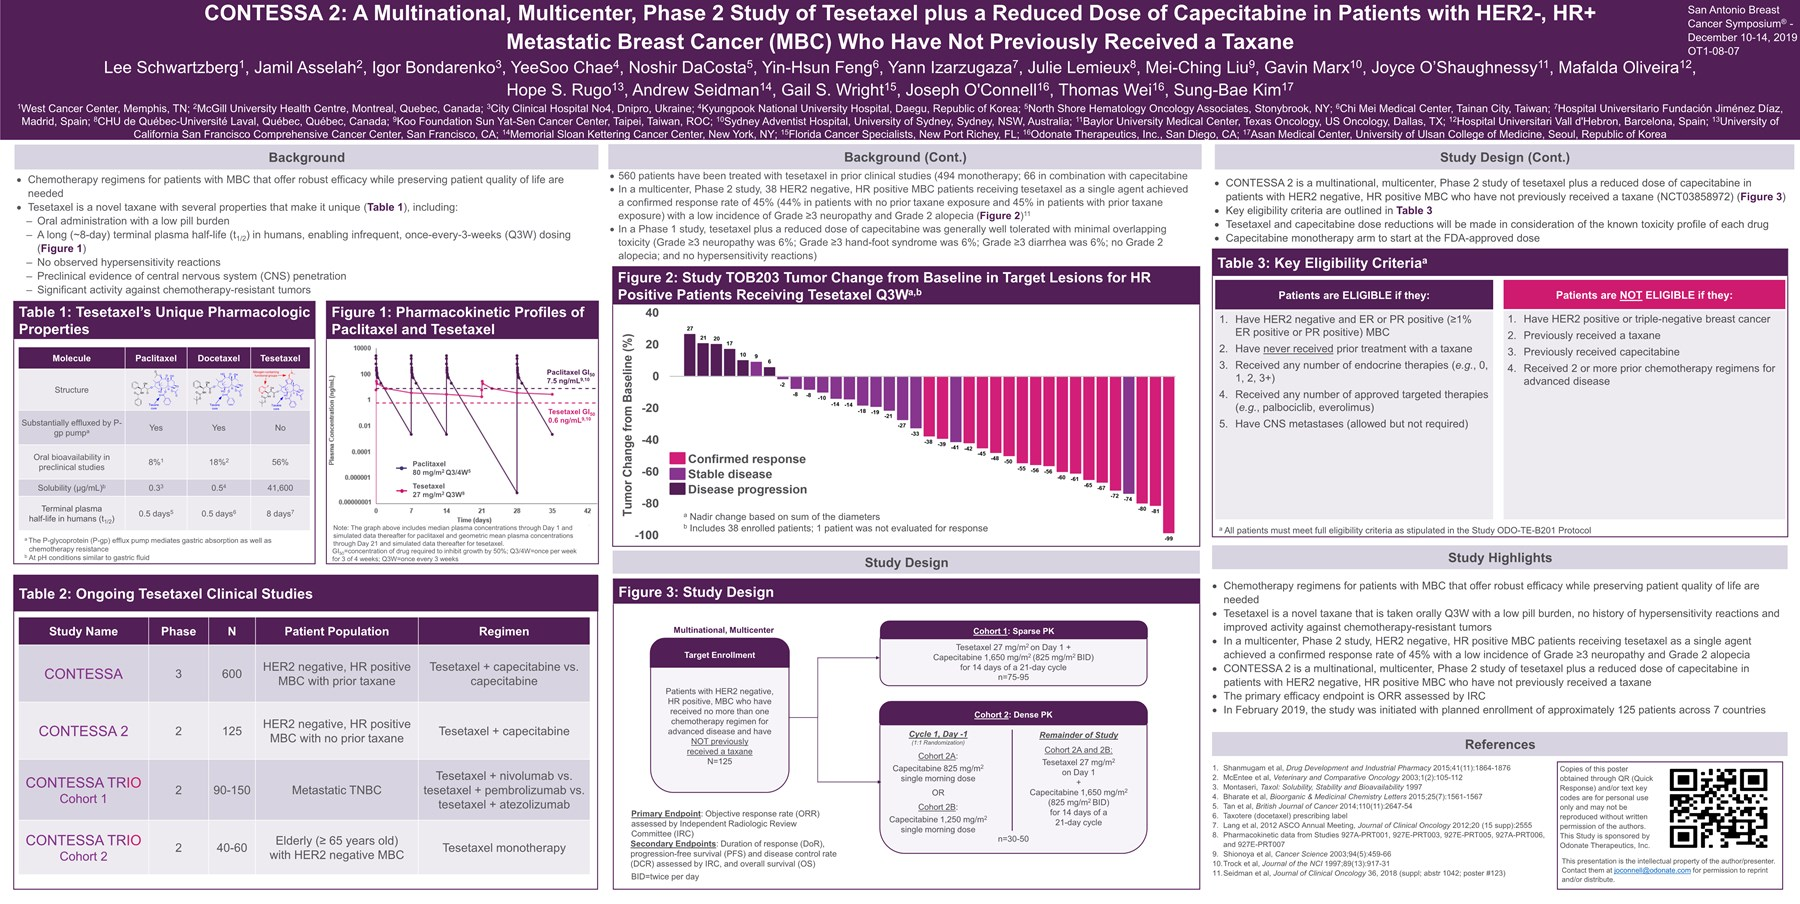 CONTESSA 2: A multinational, multicenter, phase 2 study of tesetaxel plus a reduced dose of capecitabine in patients with HER2-, HR+ metastatic breast cancer (MBC) who have not previously received a taxane